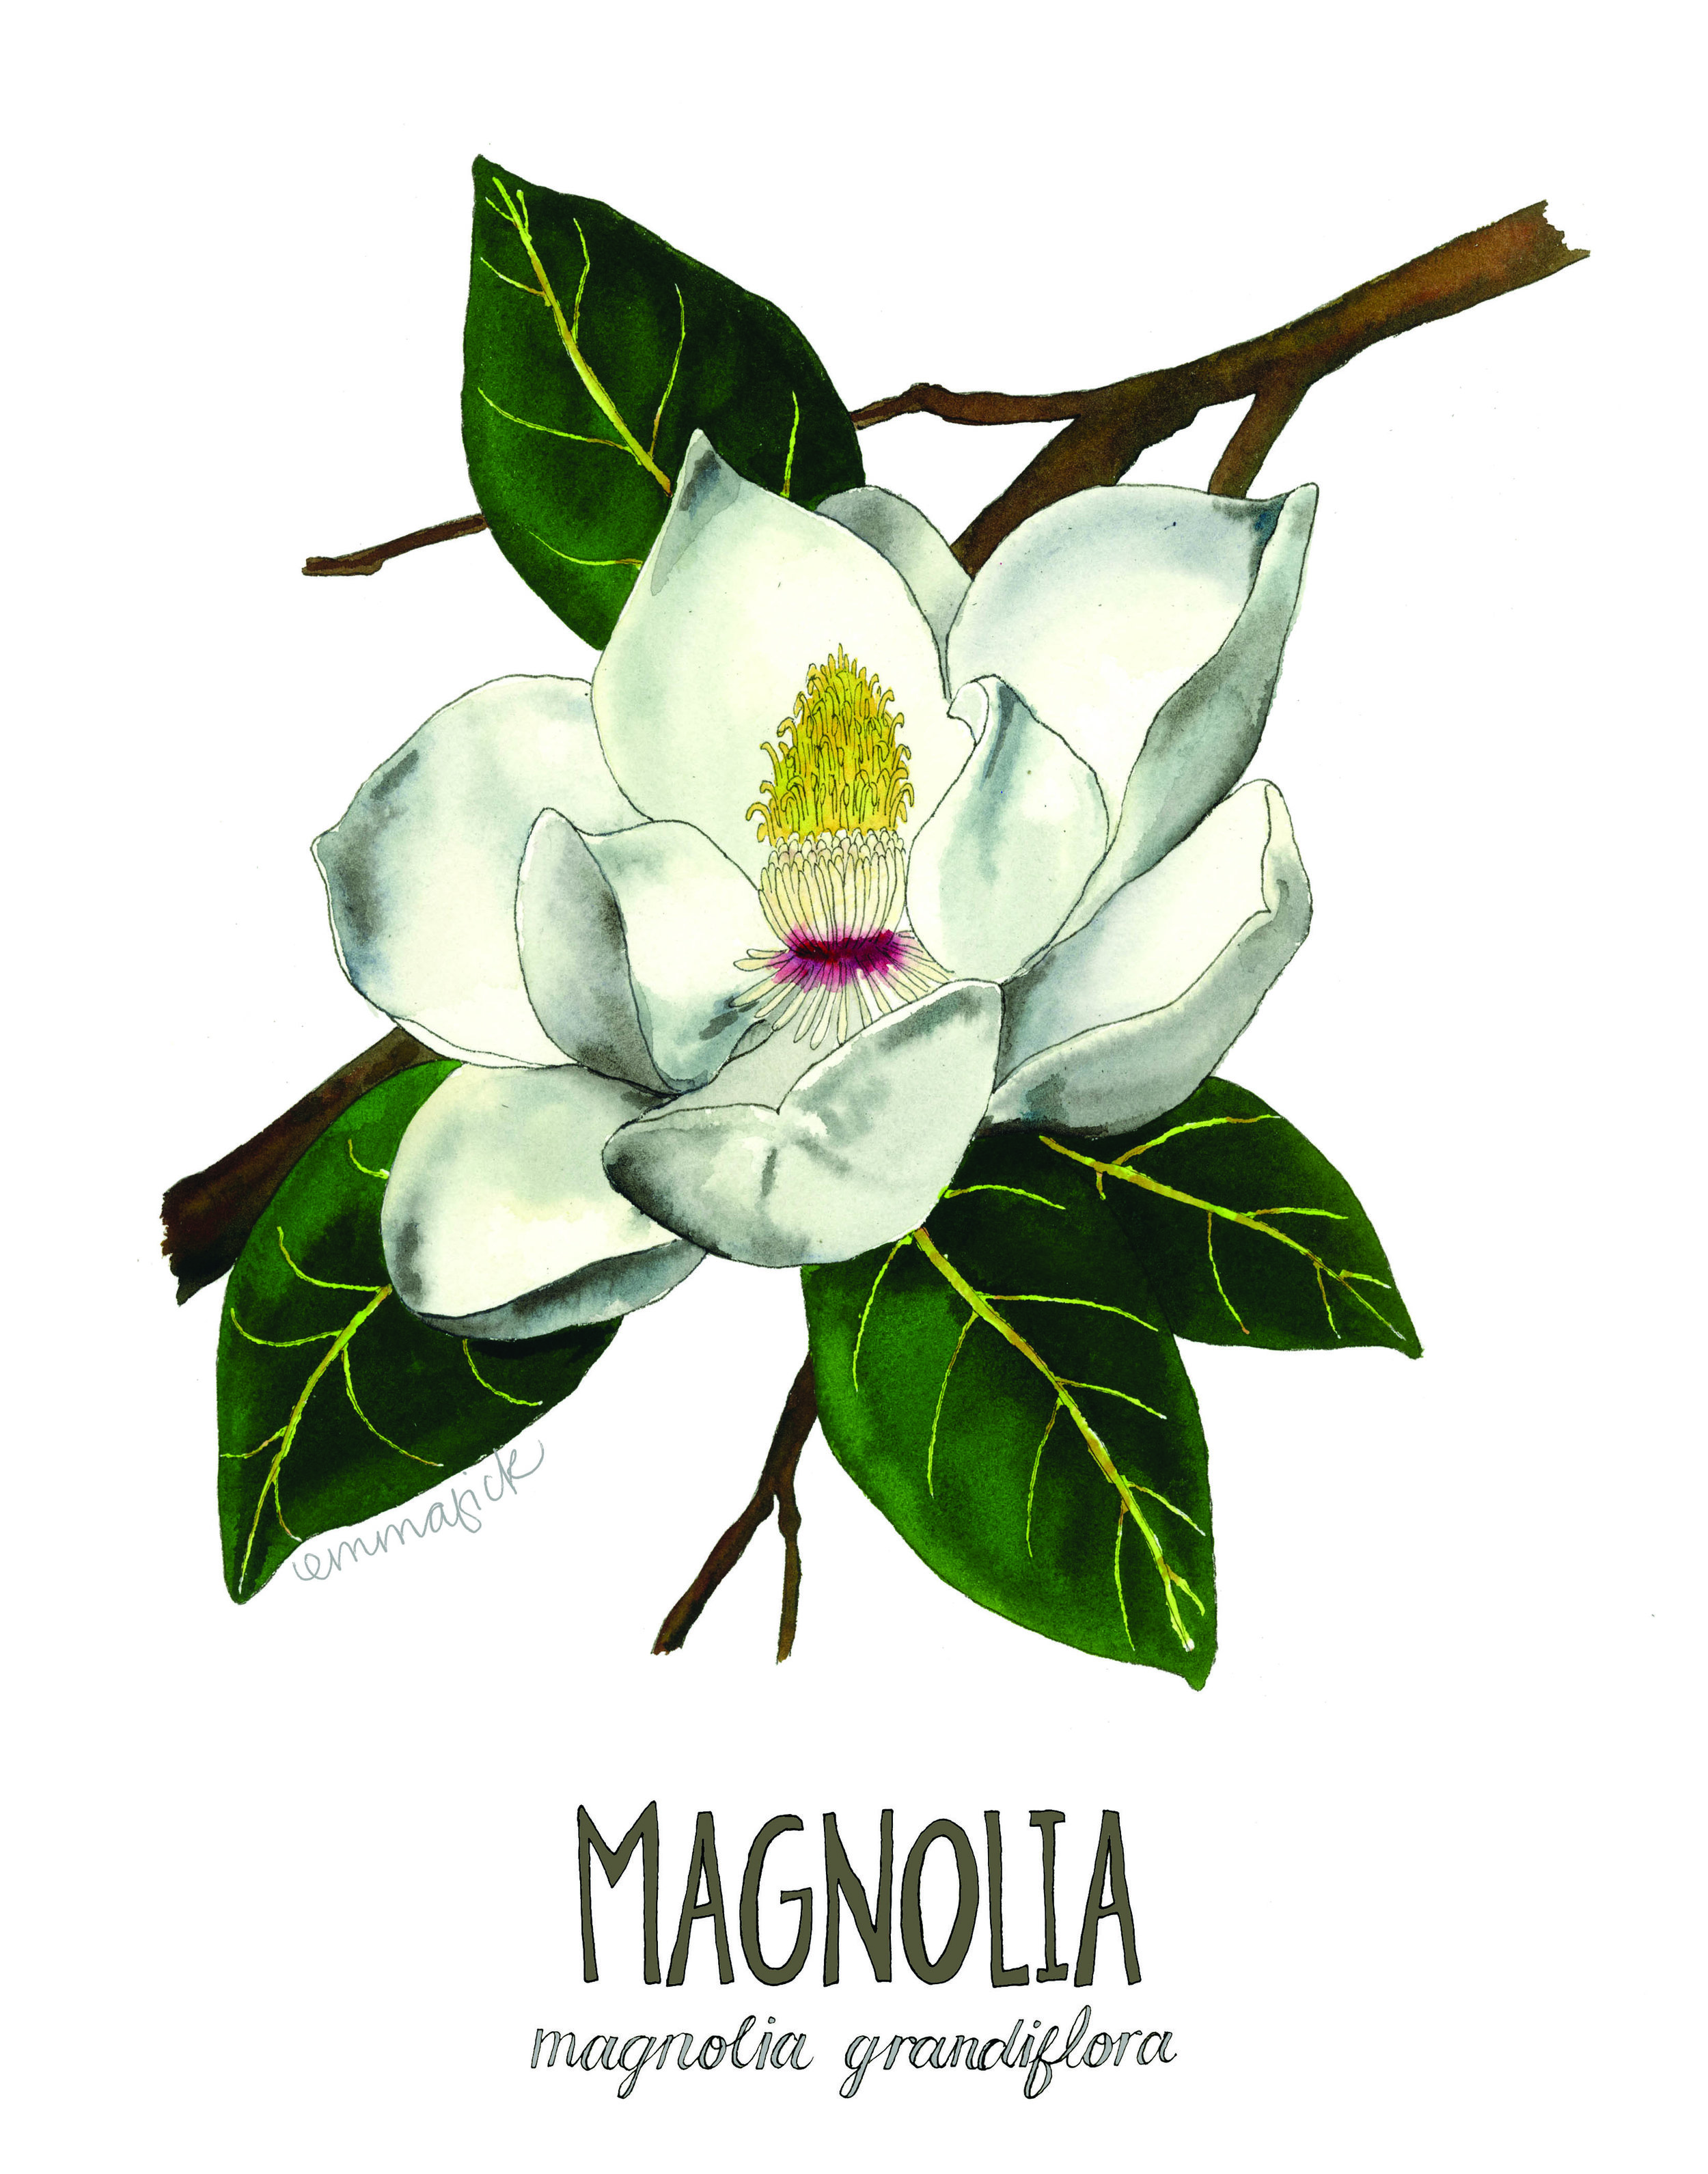 Magnolia with signature.jpg